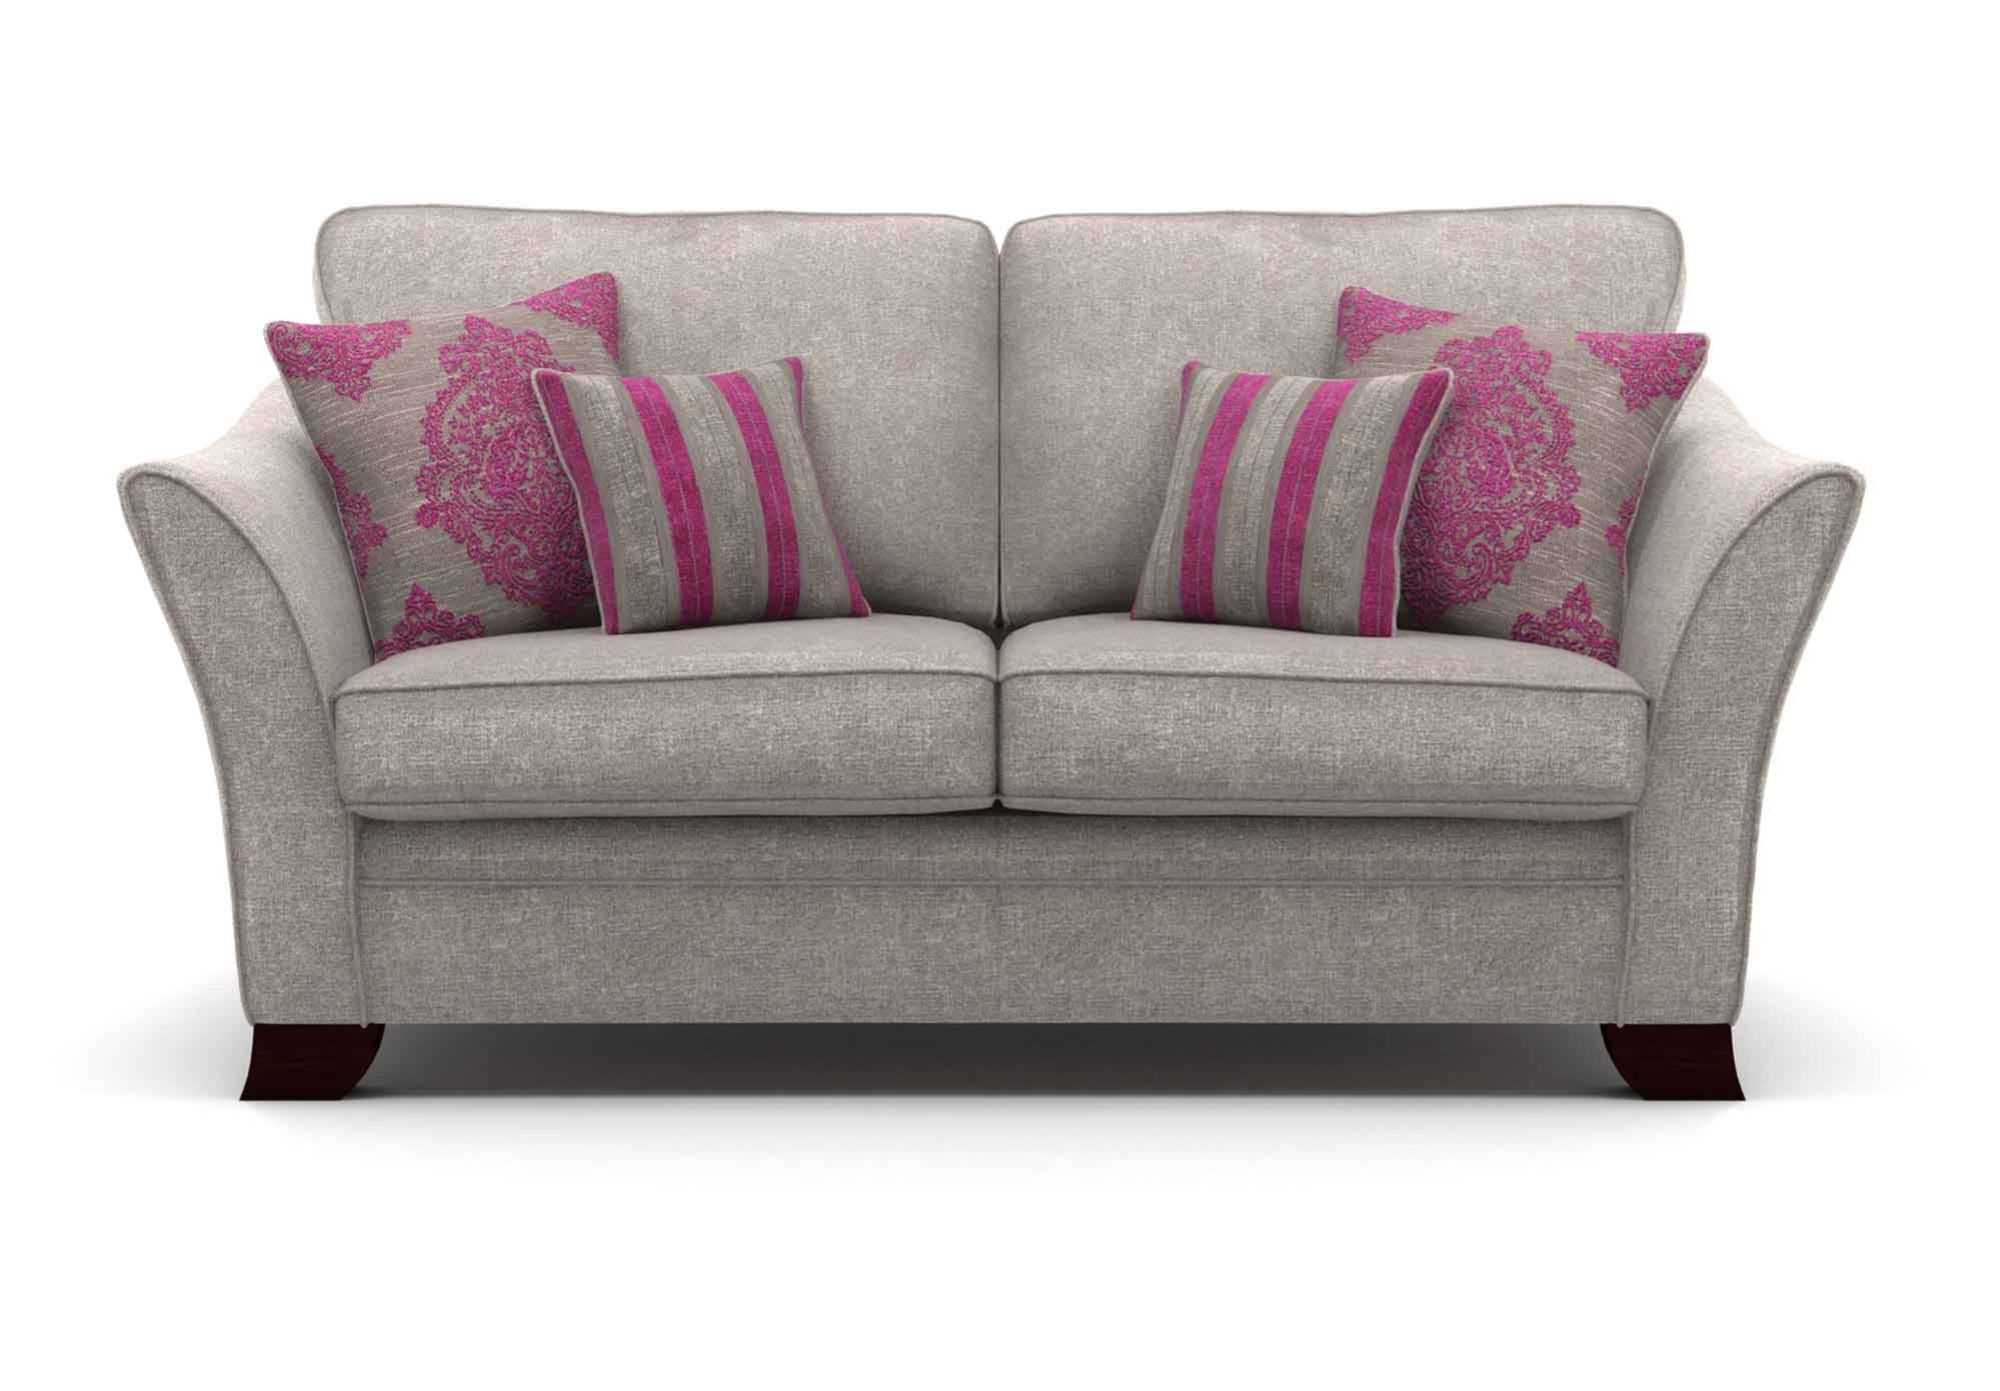 fable corner sofa furniture village table marble top 3 seater classic back hennessey living room